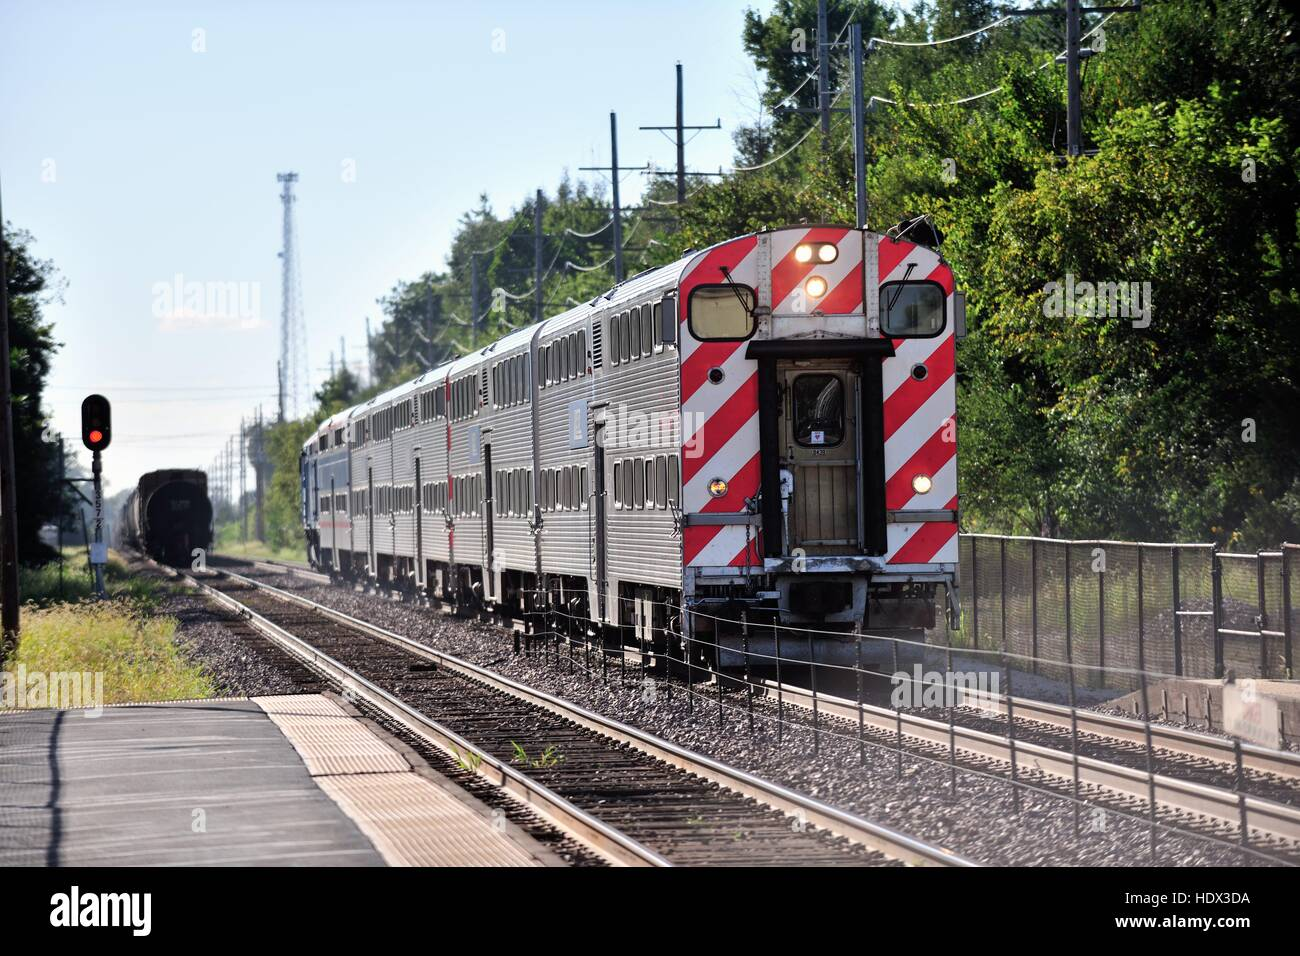 A Metra commuter train, using push-pull techniques arriving at Geneva, Illinois on its way to Chicago. Geneva, Illinois, - Stock Image